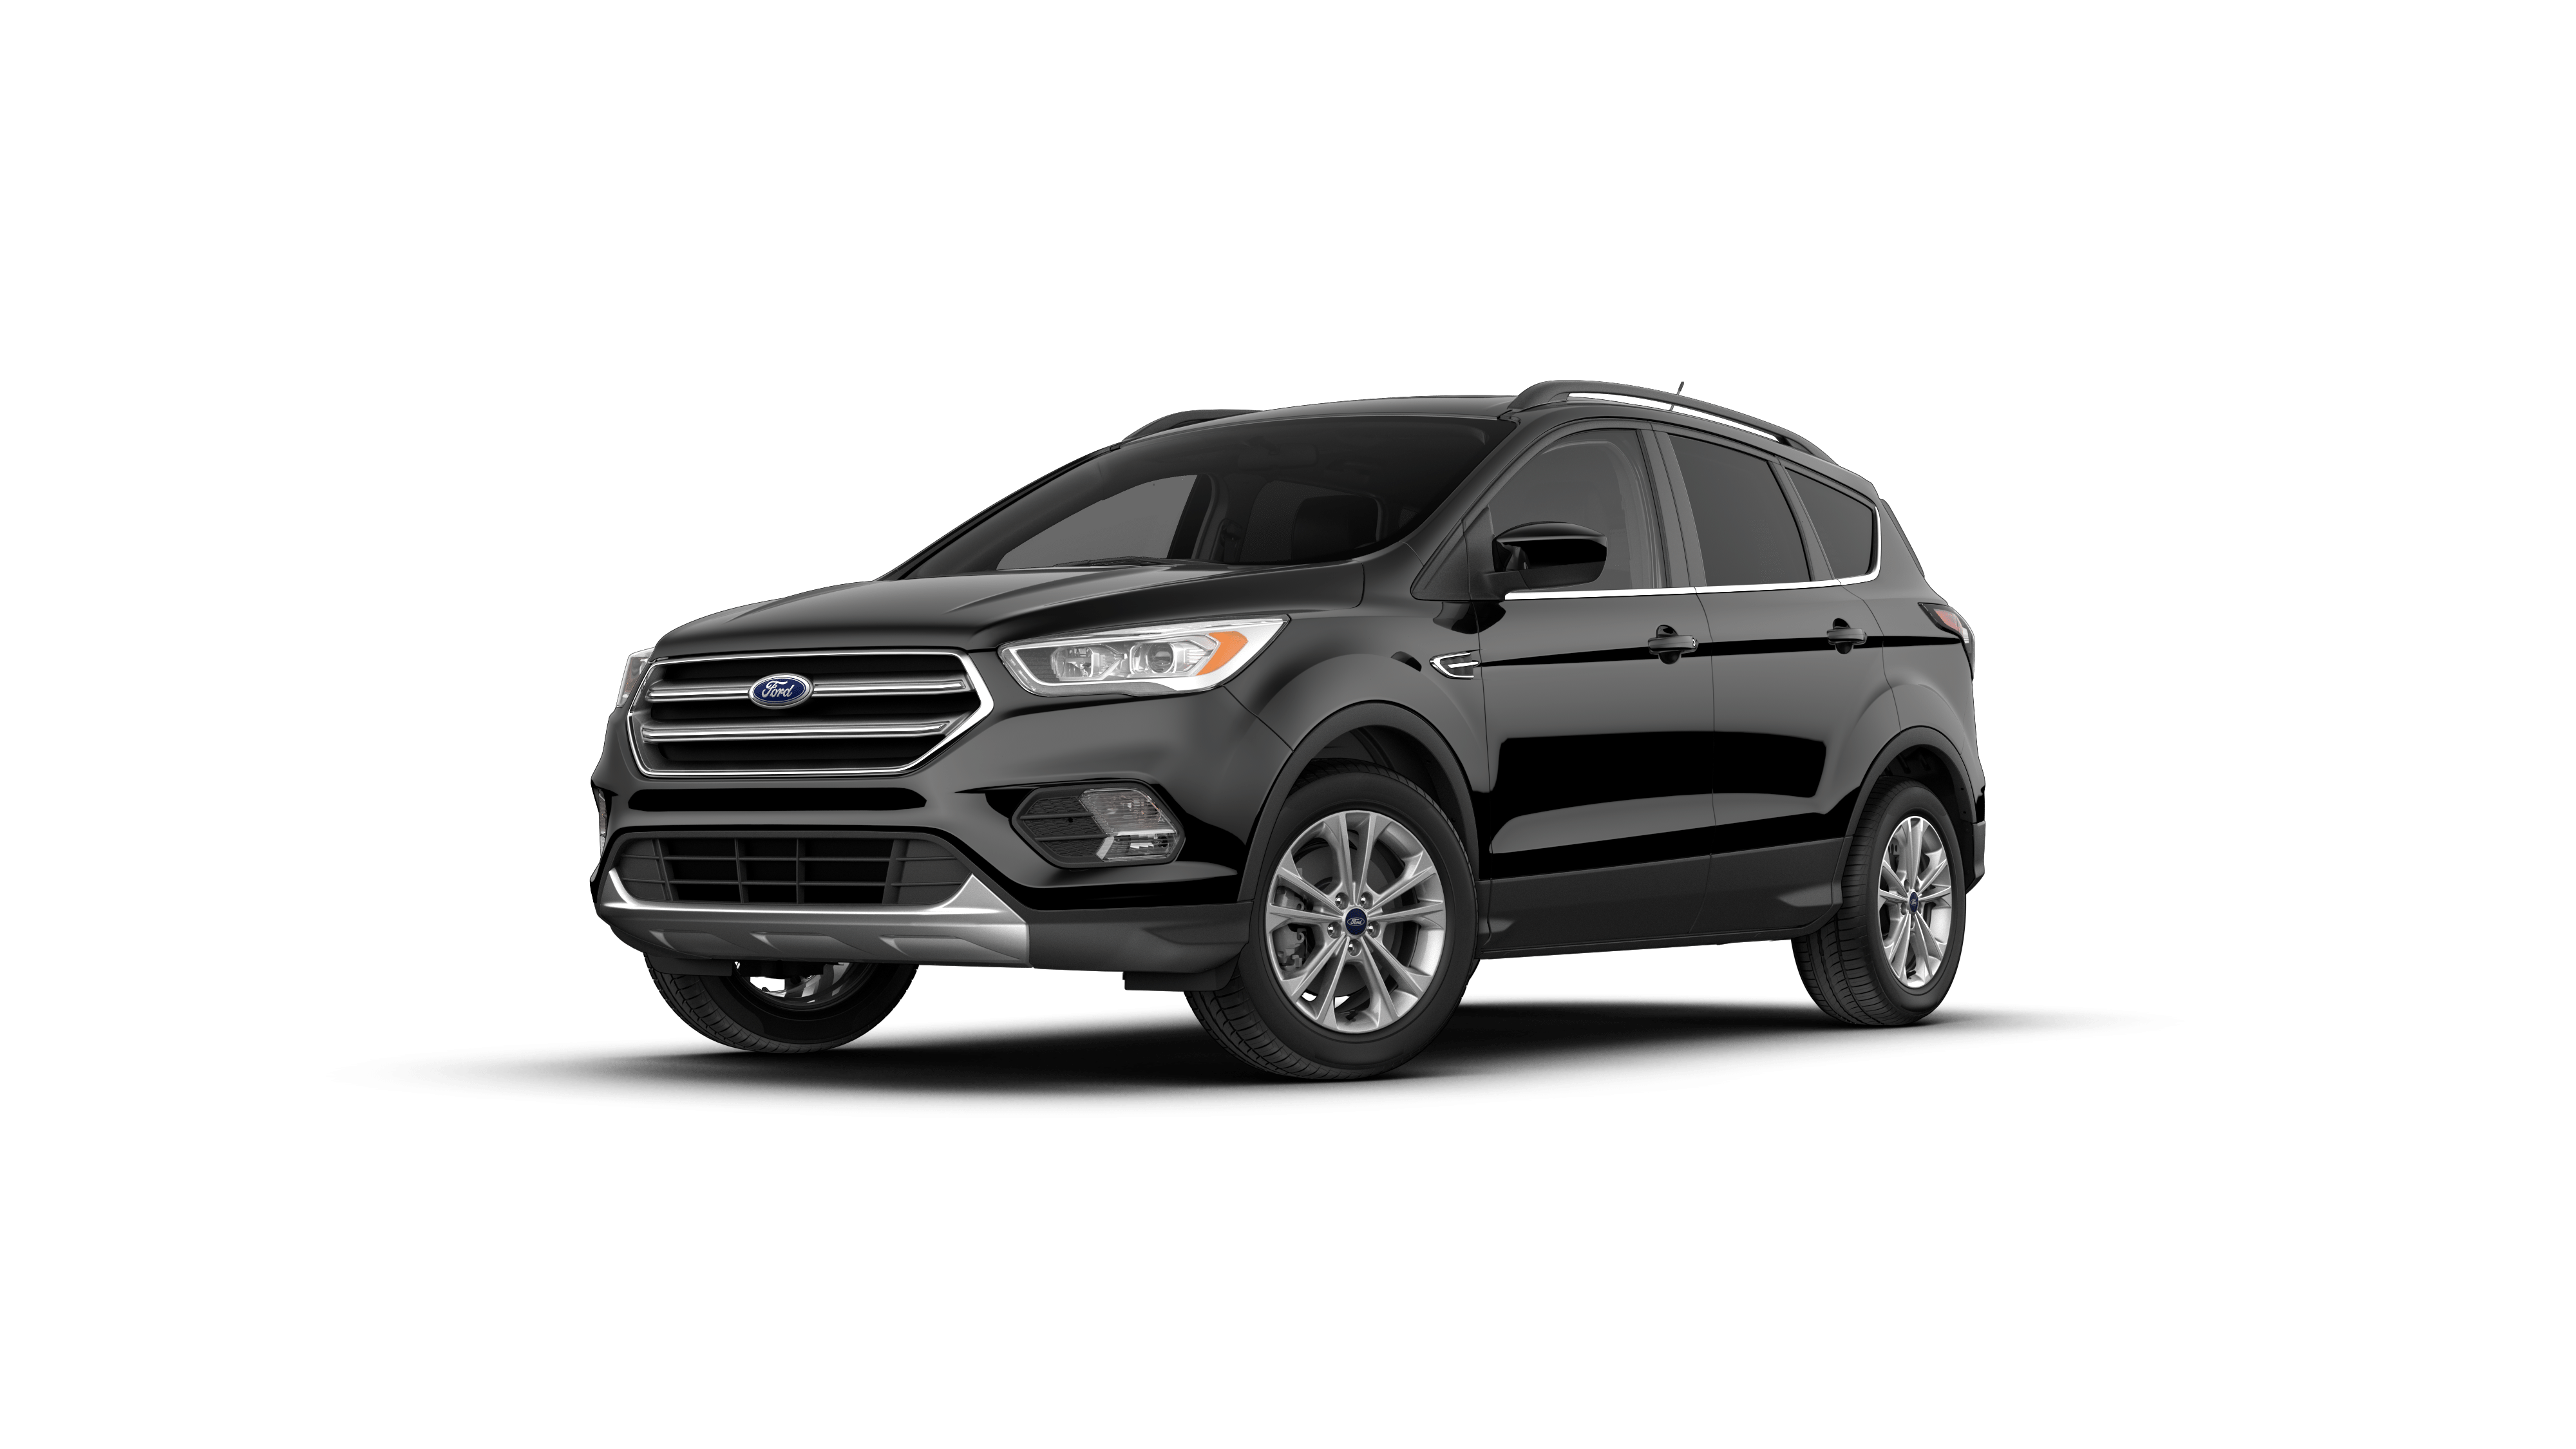 Cars for Sale Near Quakertown Pa Lovely Car Pictures